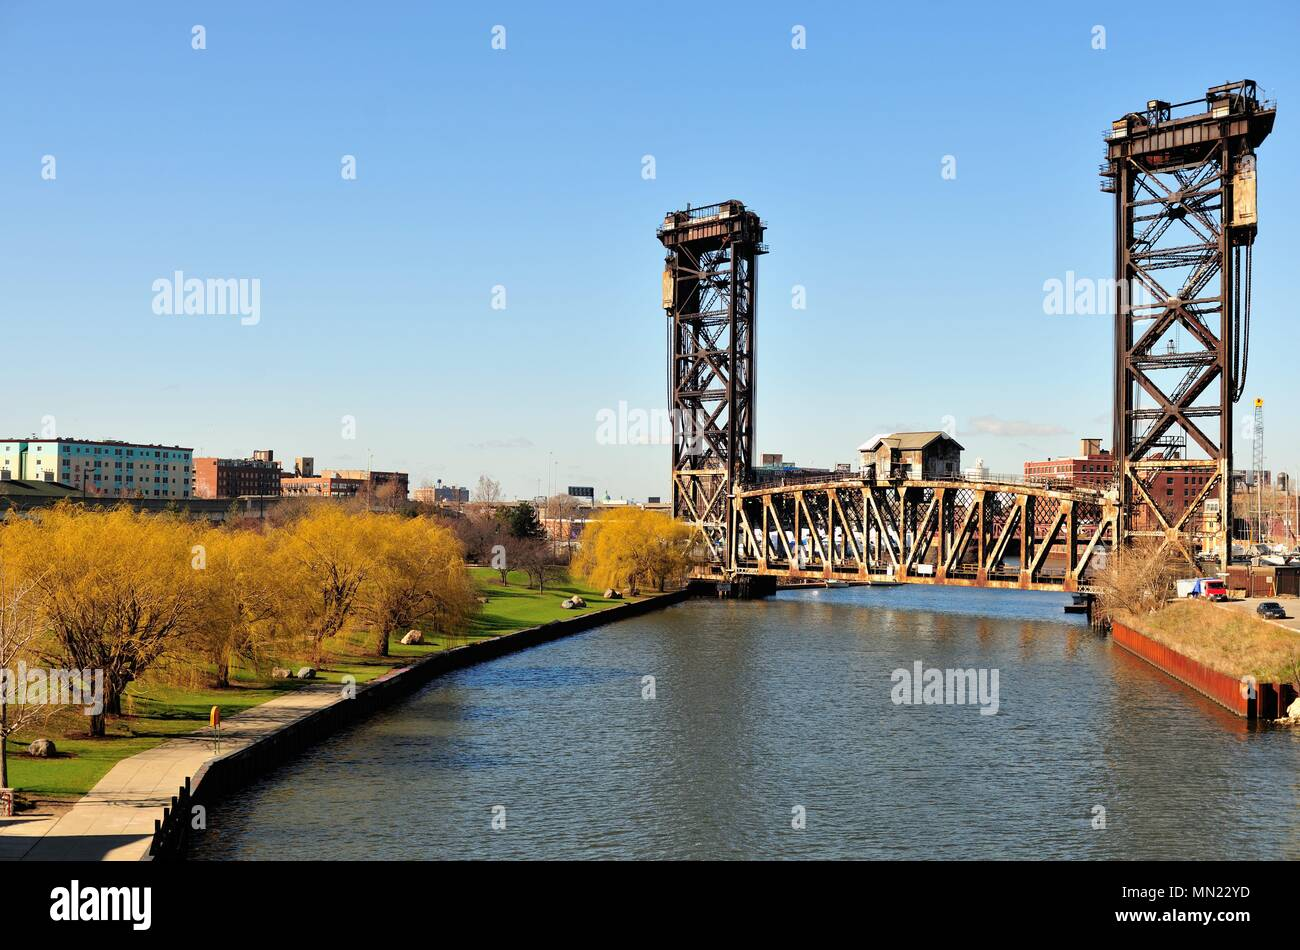 Chicago, Illinois, USA. Chicago's venerable Canal Street Railroad Bridge over the South Branch of the South Branch of the Chicago River. - Stock Image